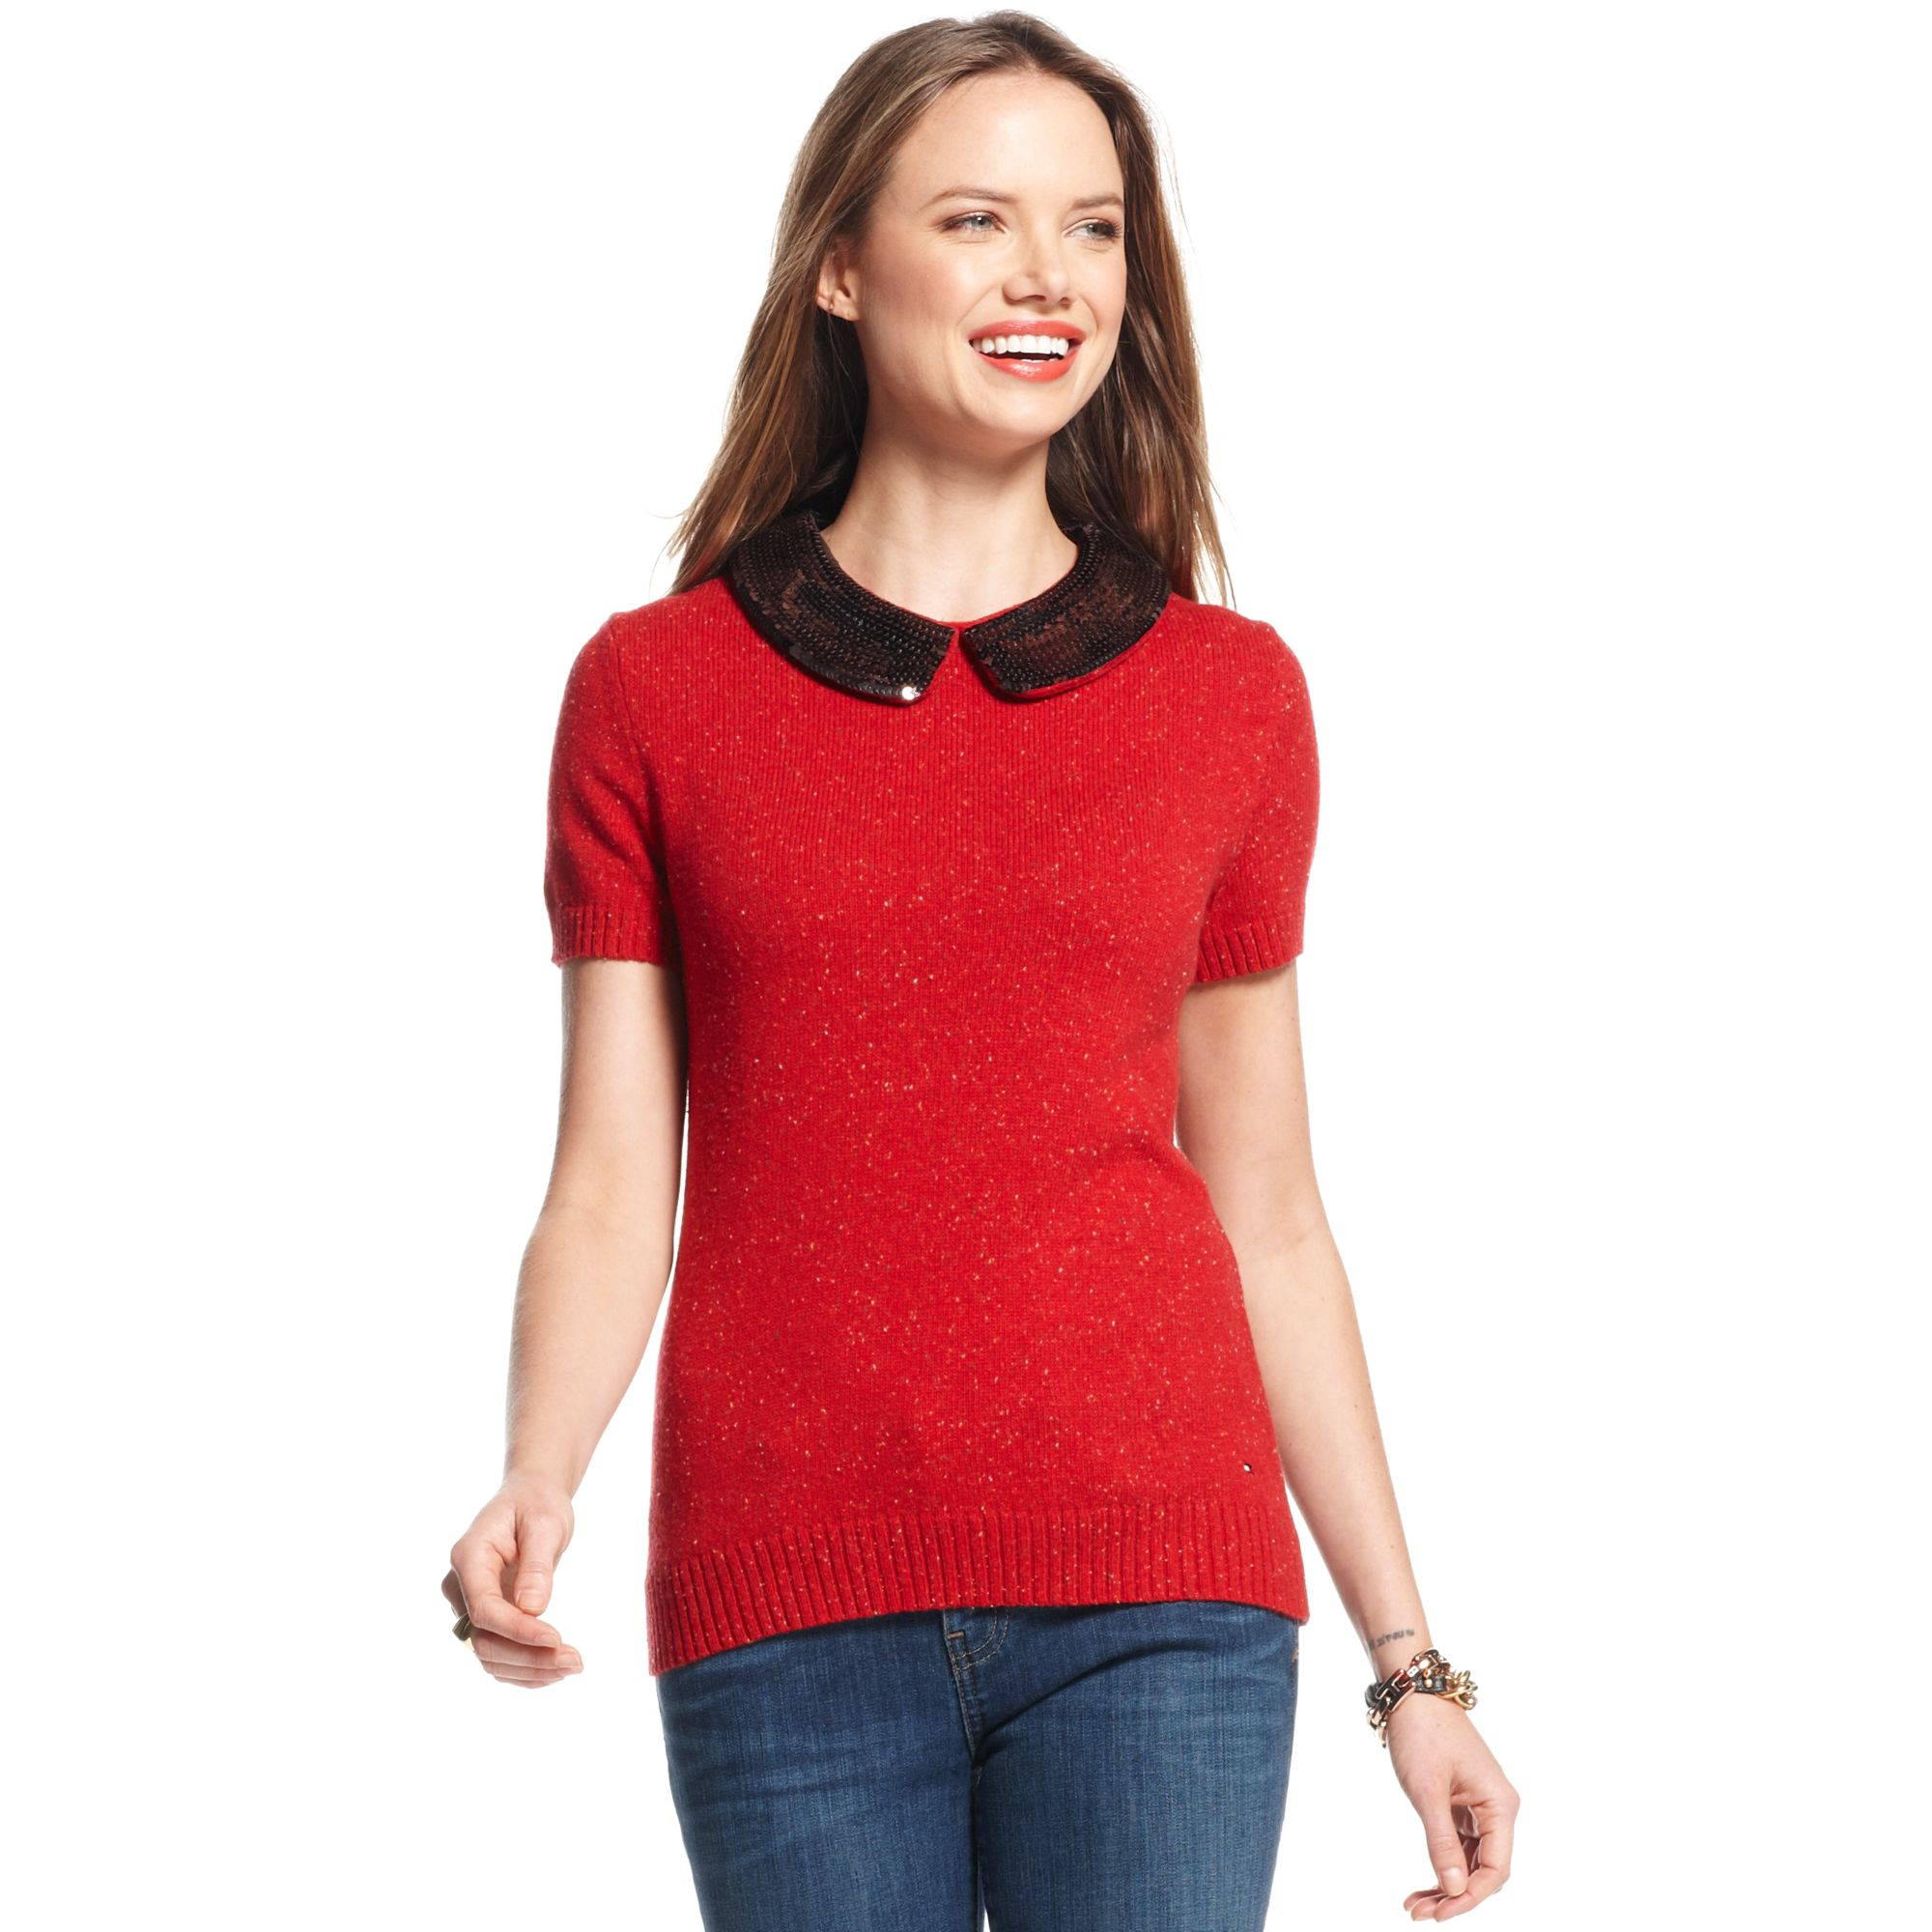 Tommy hilfiger Short Sleeve Beaded Sweater in Red | Lyst